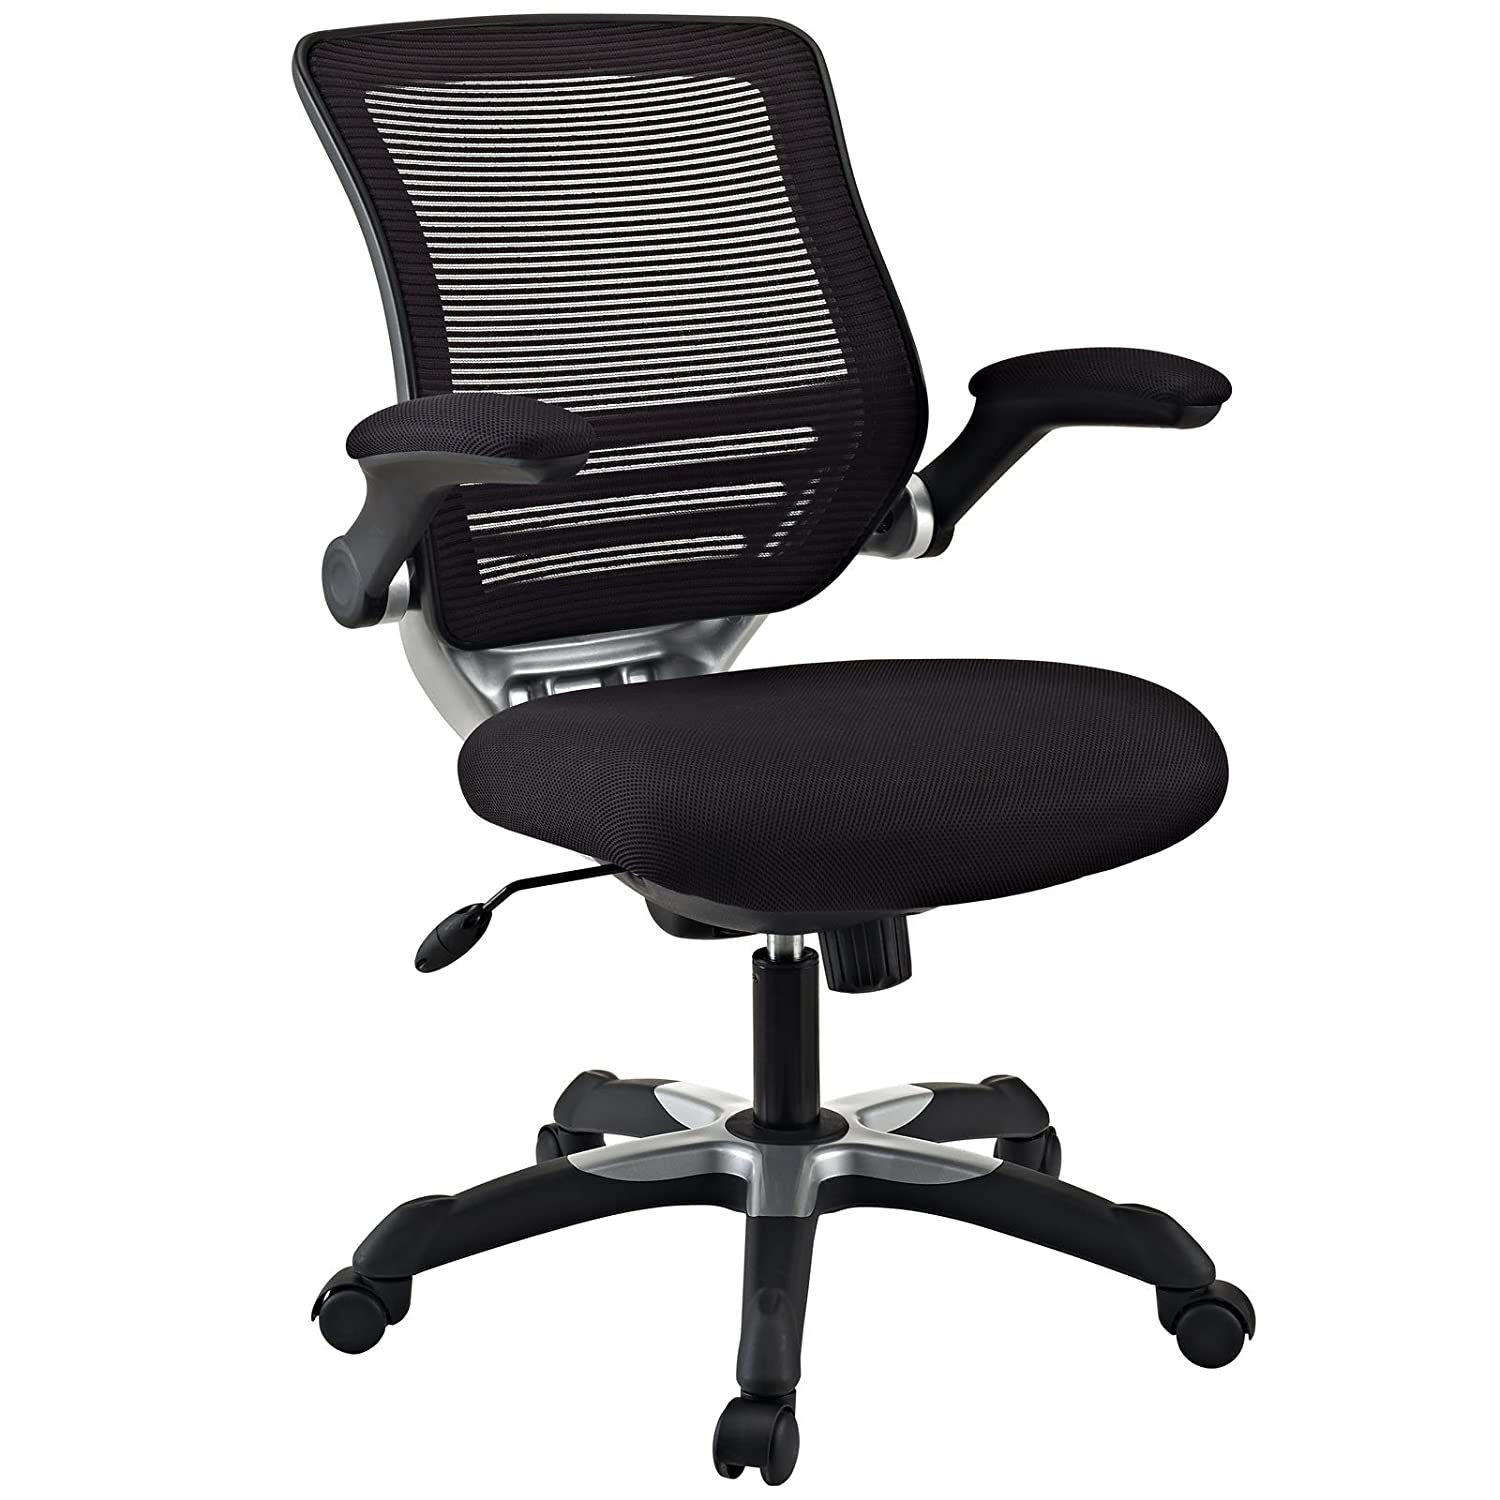 The Edge Office Chair with Mesh Back and Seat